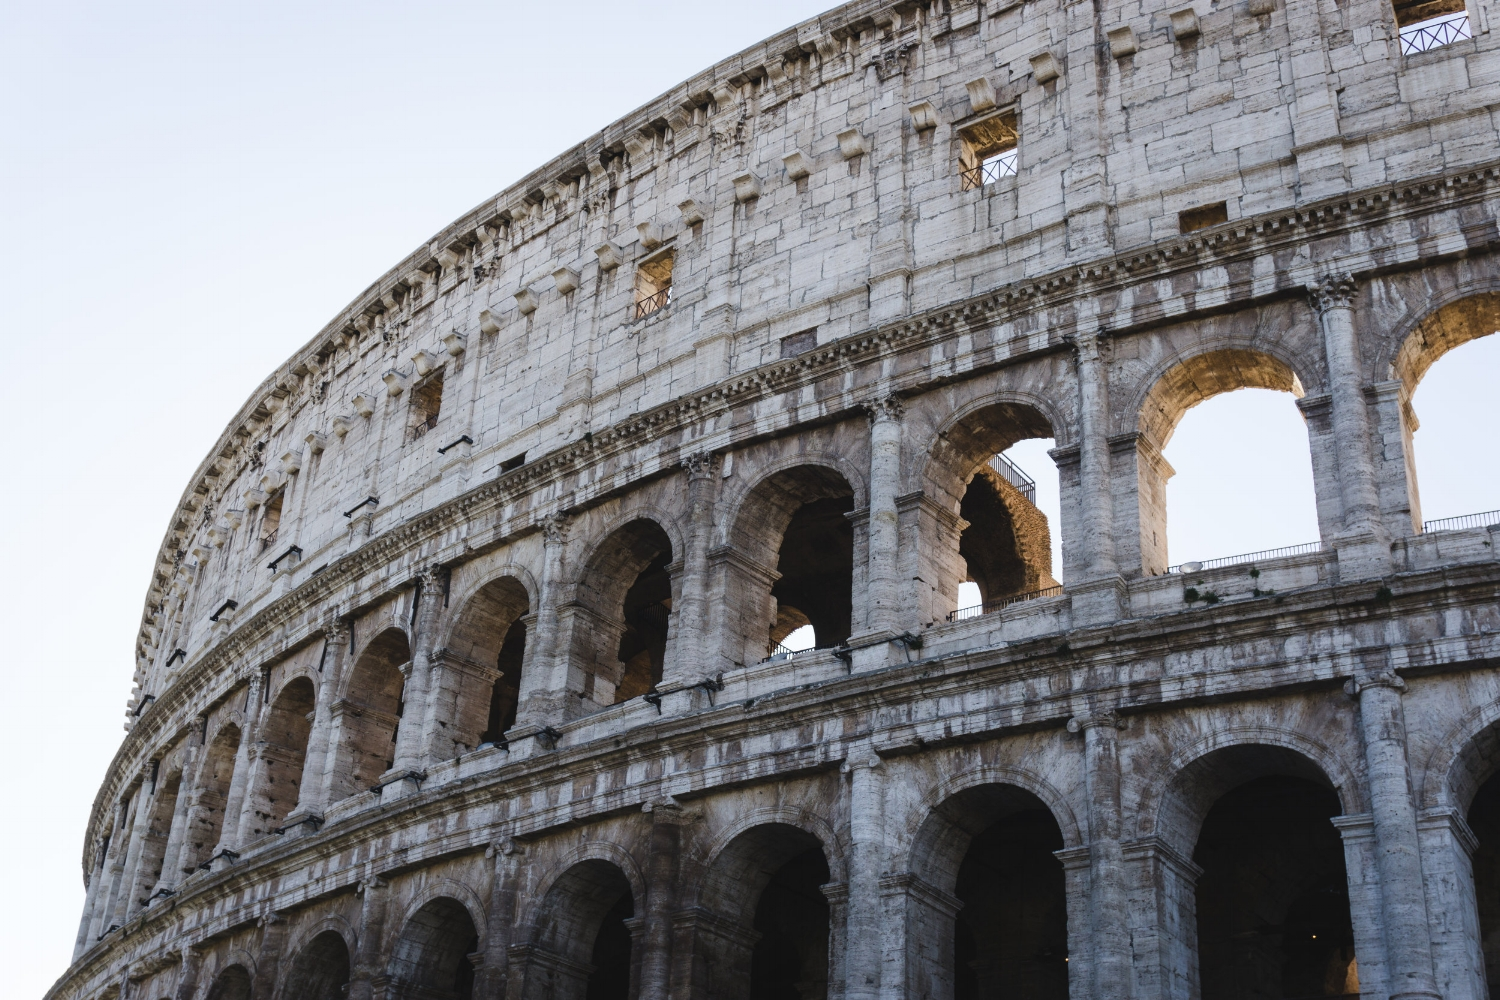 Tripp Films talks about documenting adventures while still enjoying them_Colosseum